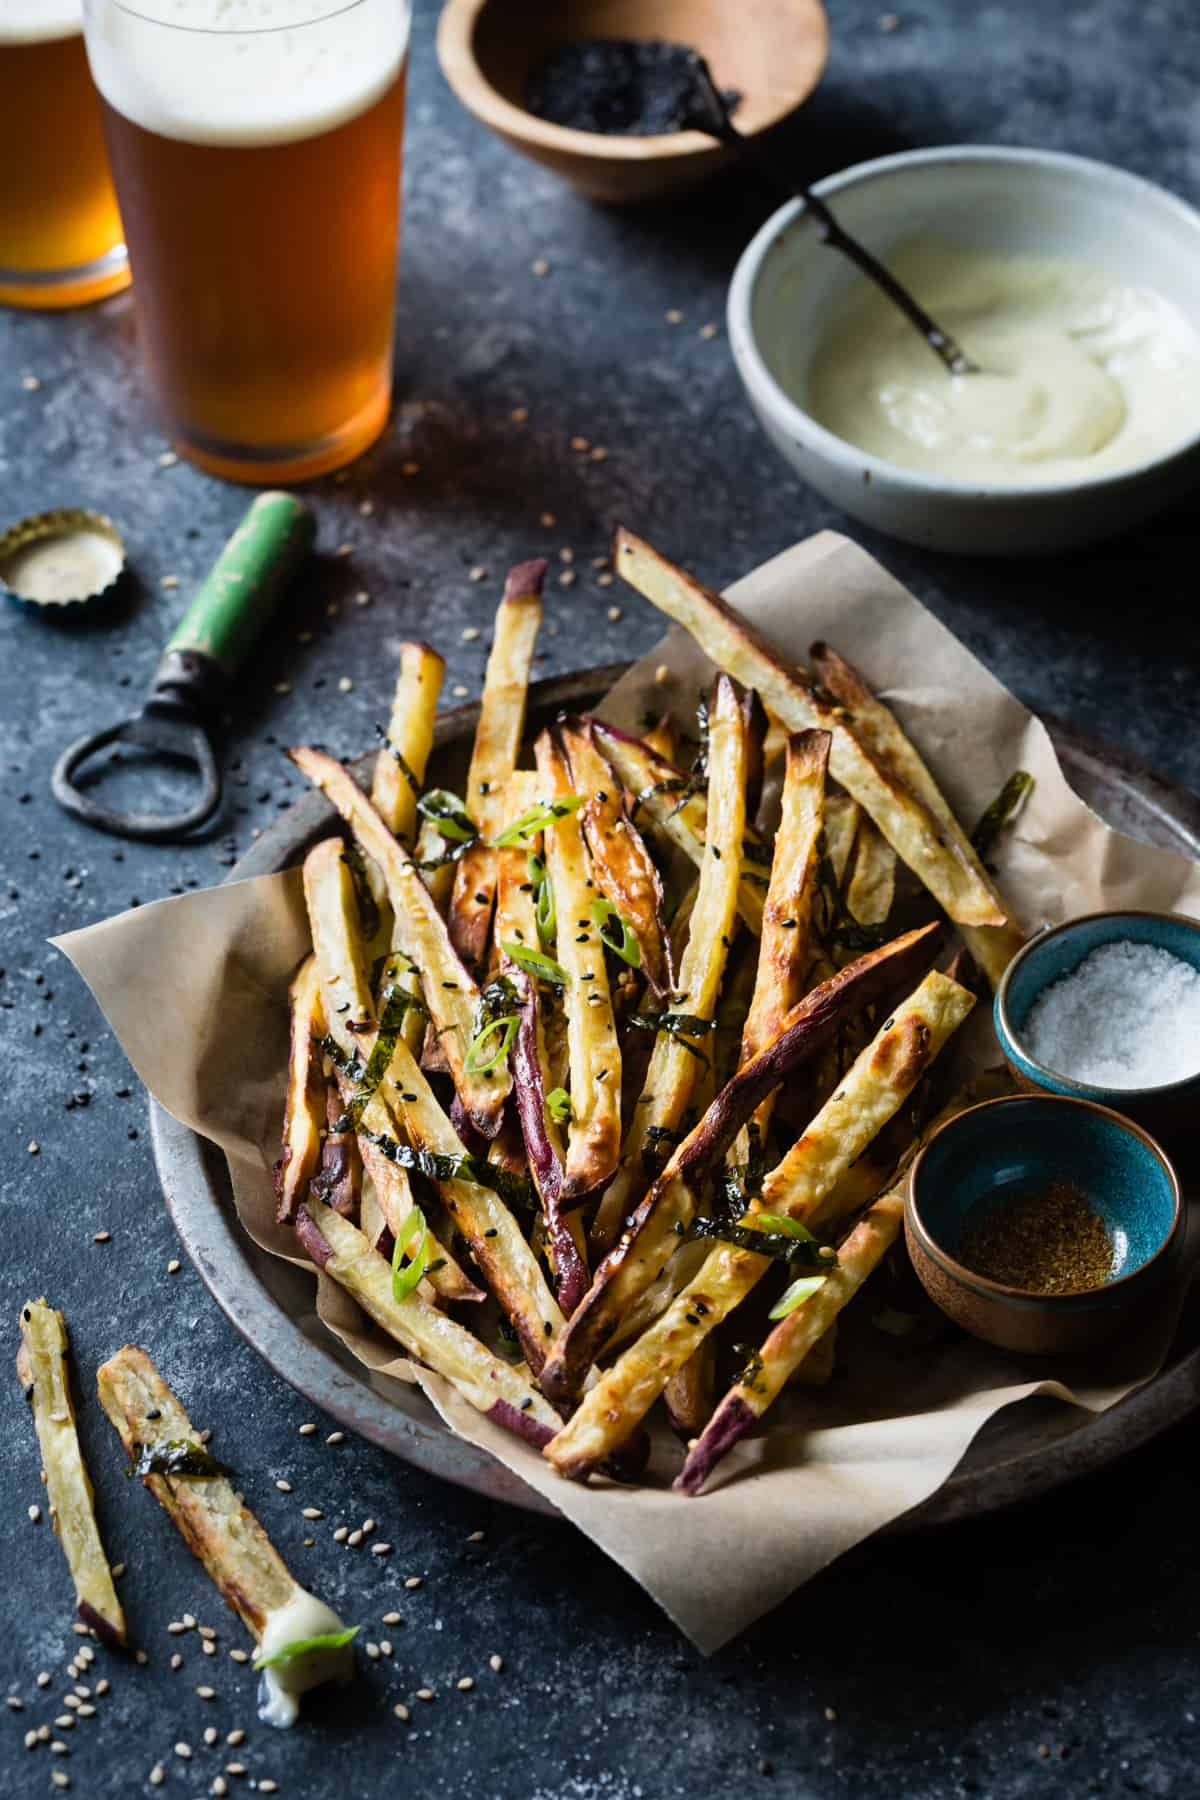 Japanese Sweet Potato Oven Fries with Wasabi Aioli in bowl